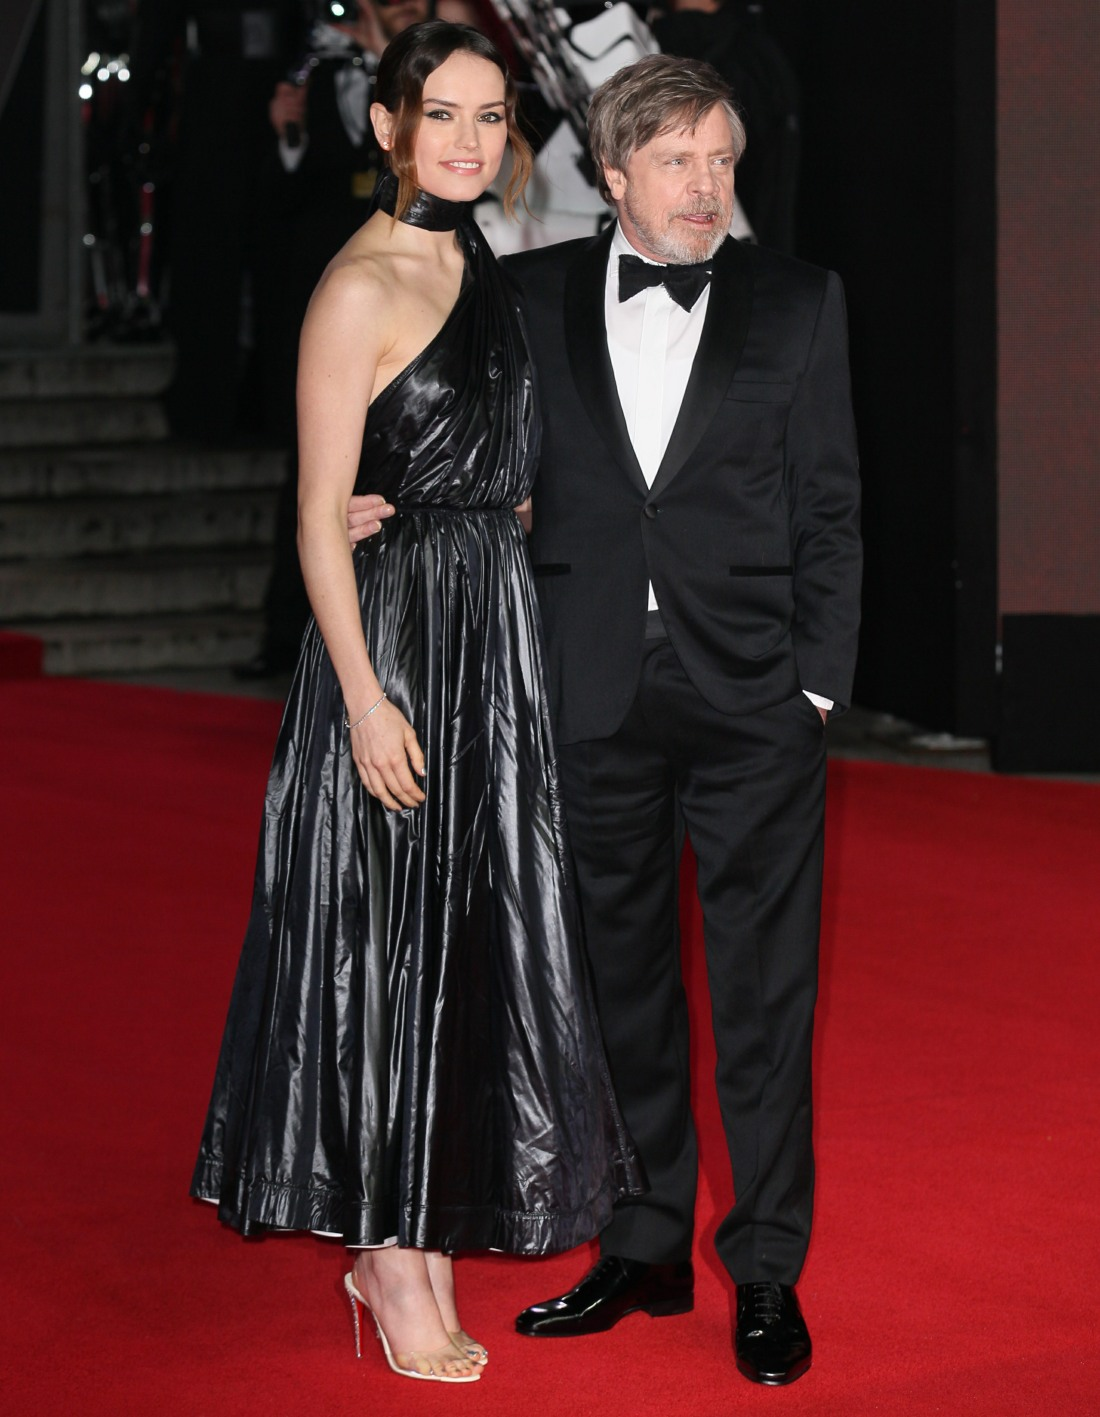 The European Premiere of Star Wars: The Last Jedi held at the Royal Albert Hall